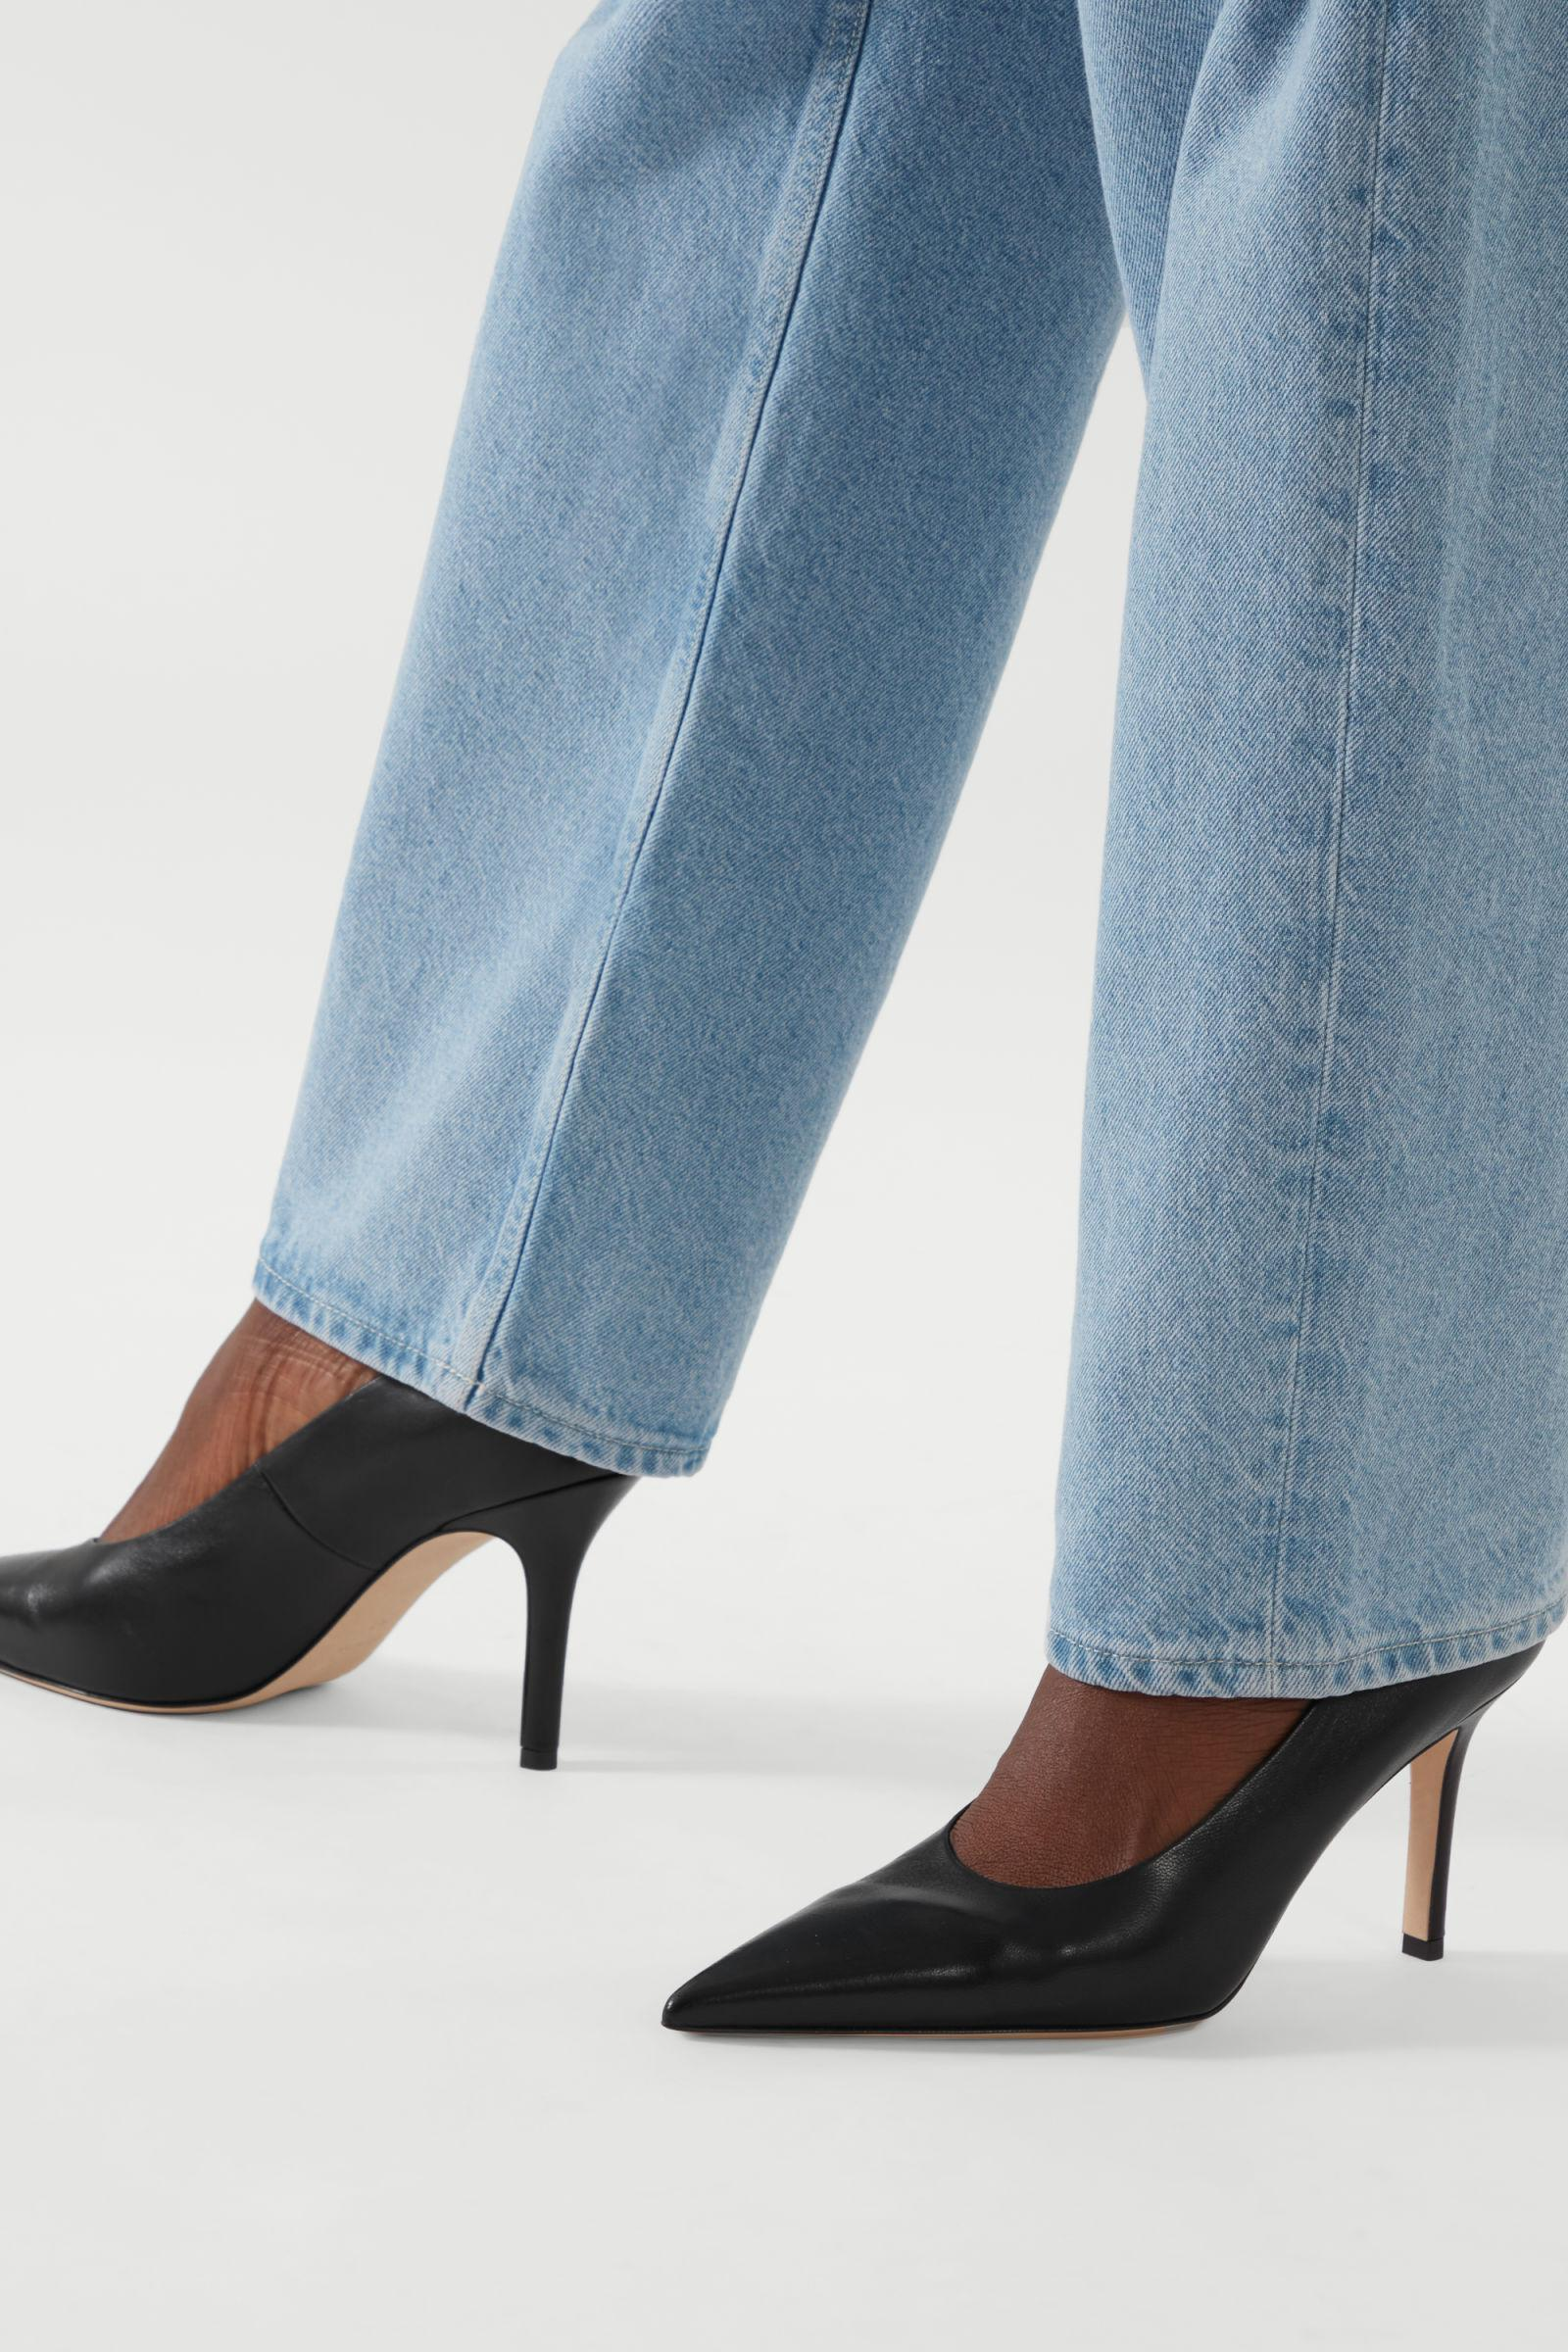 POINTED LEATHER HIGH HEELS 6